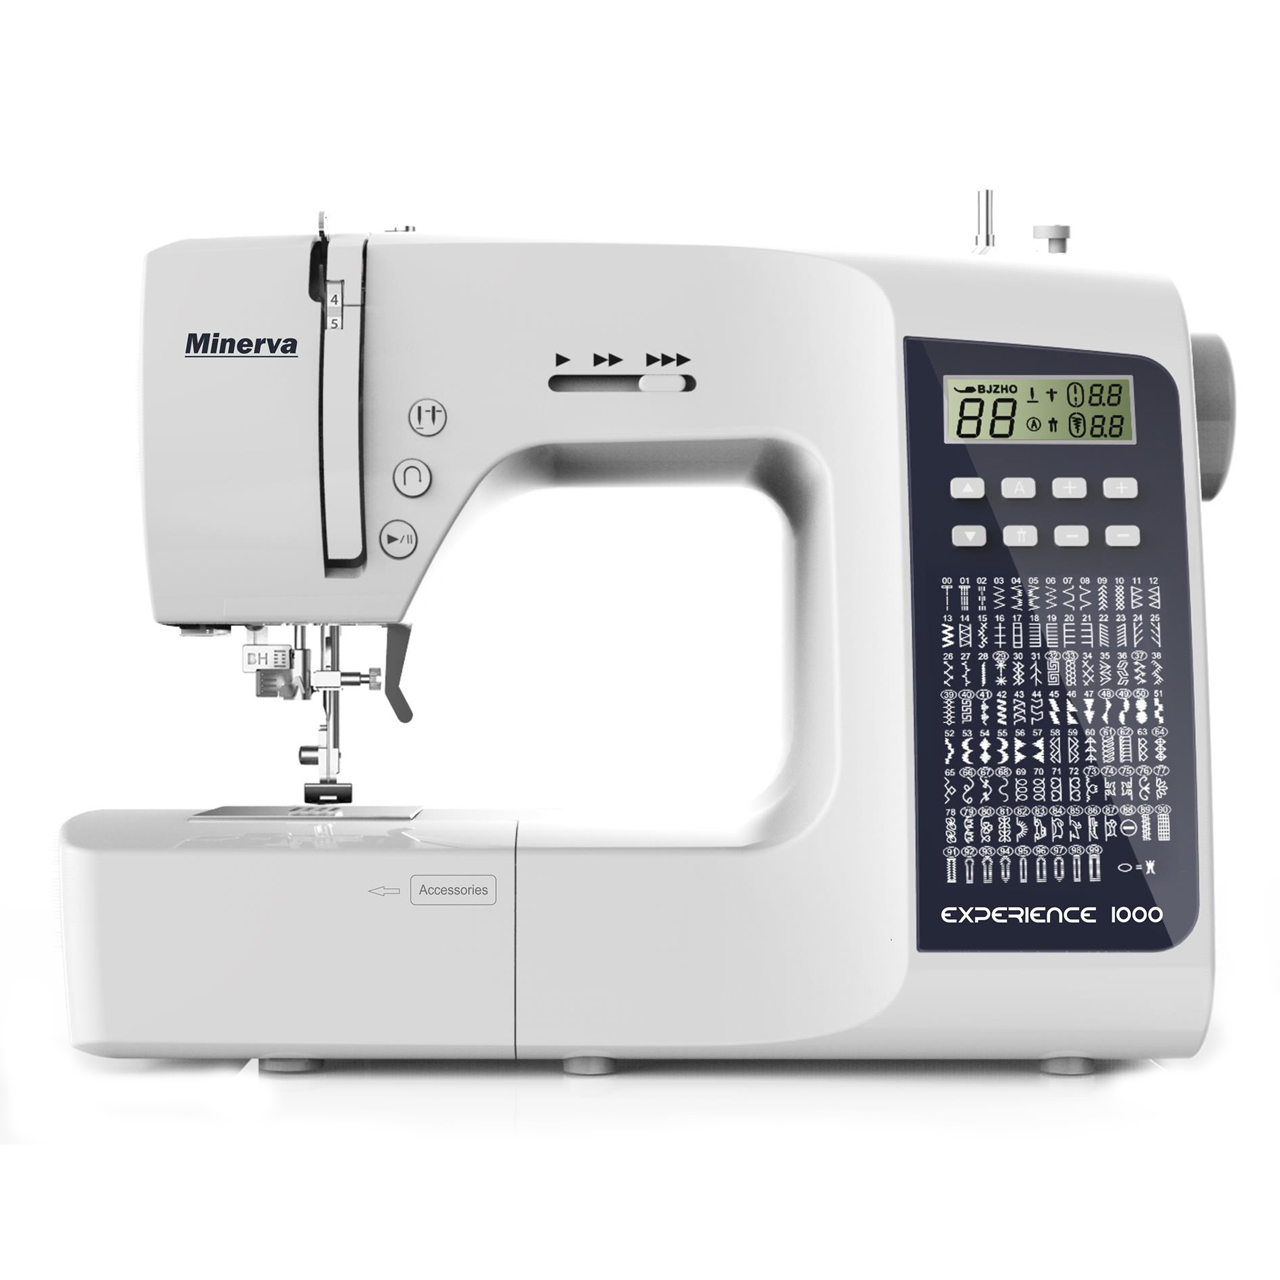 Sewing machine Minerva Experience 1000 (100 programs, electronic control, backlight, wide bundle) sewing machine minerva m840ds